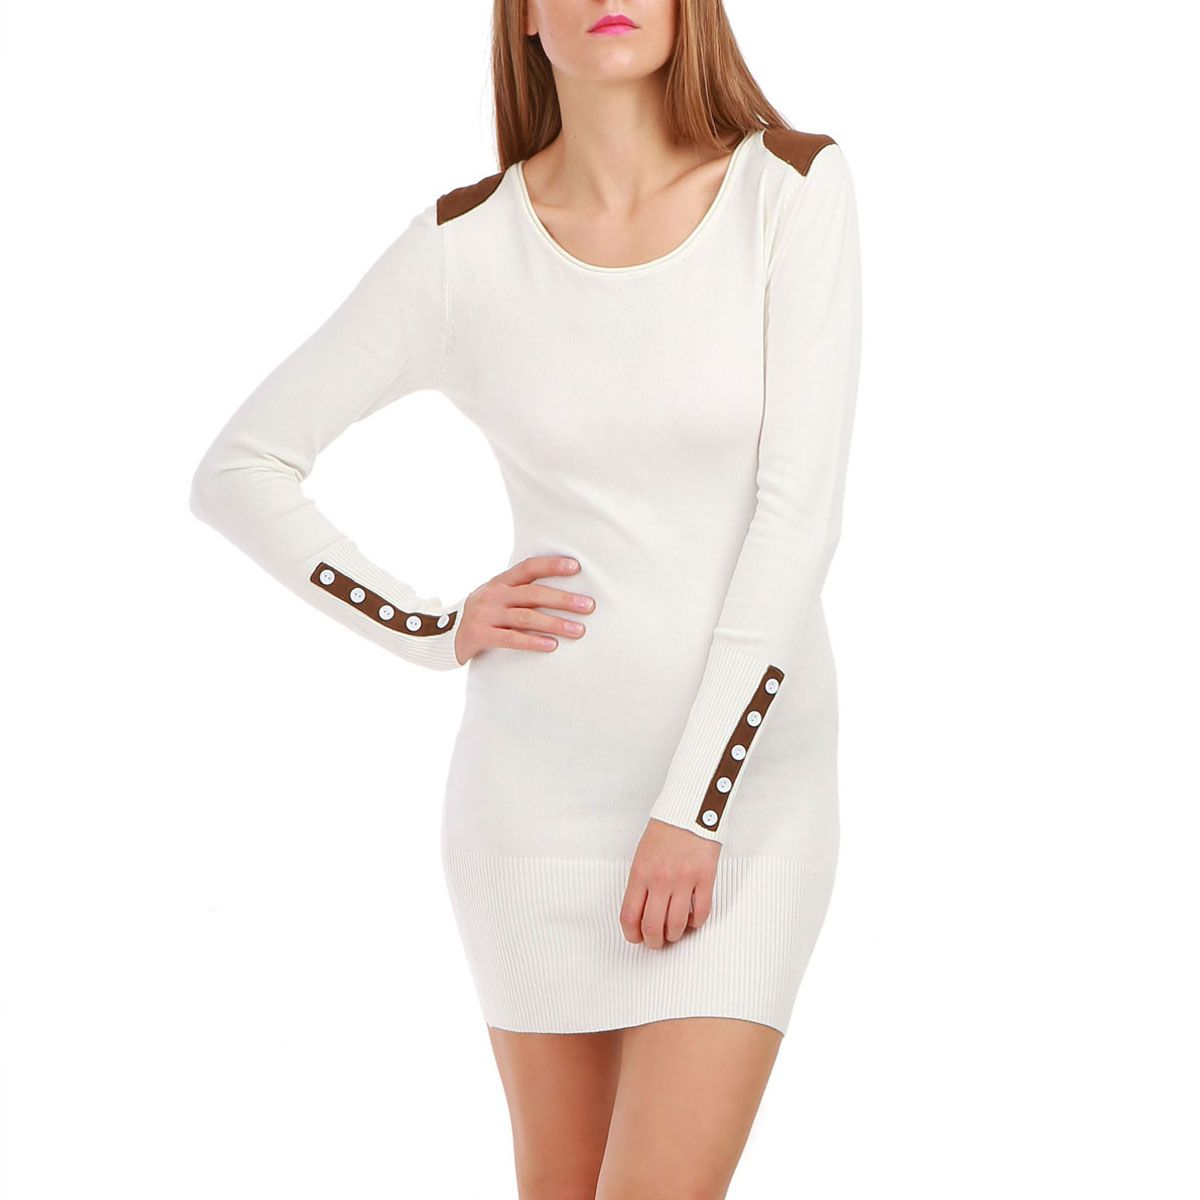 Robe pull blanche pas cher